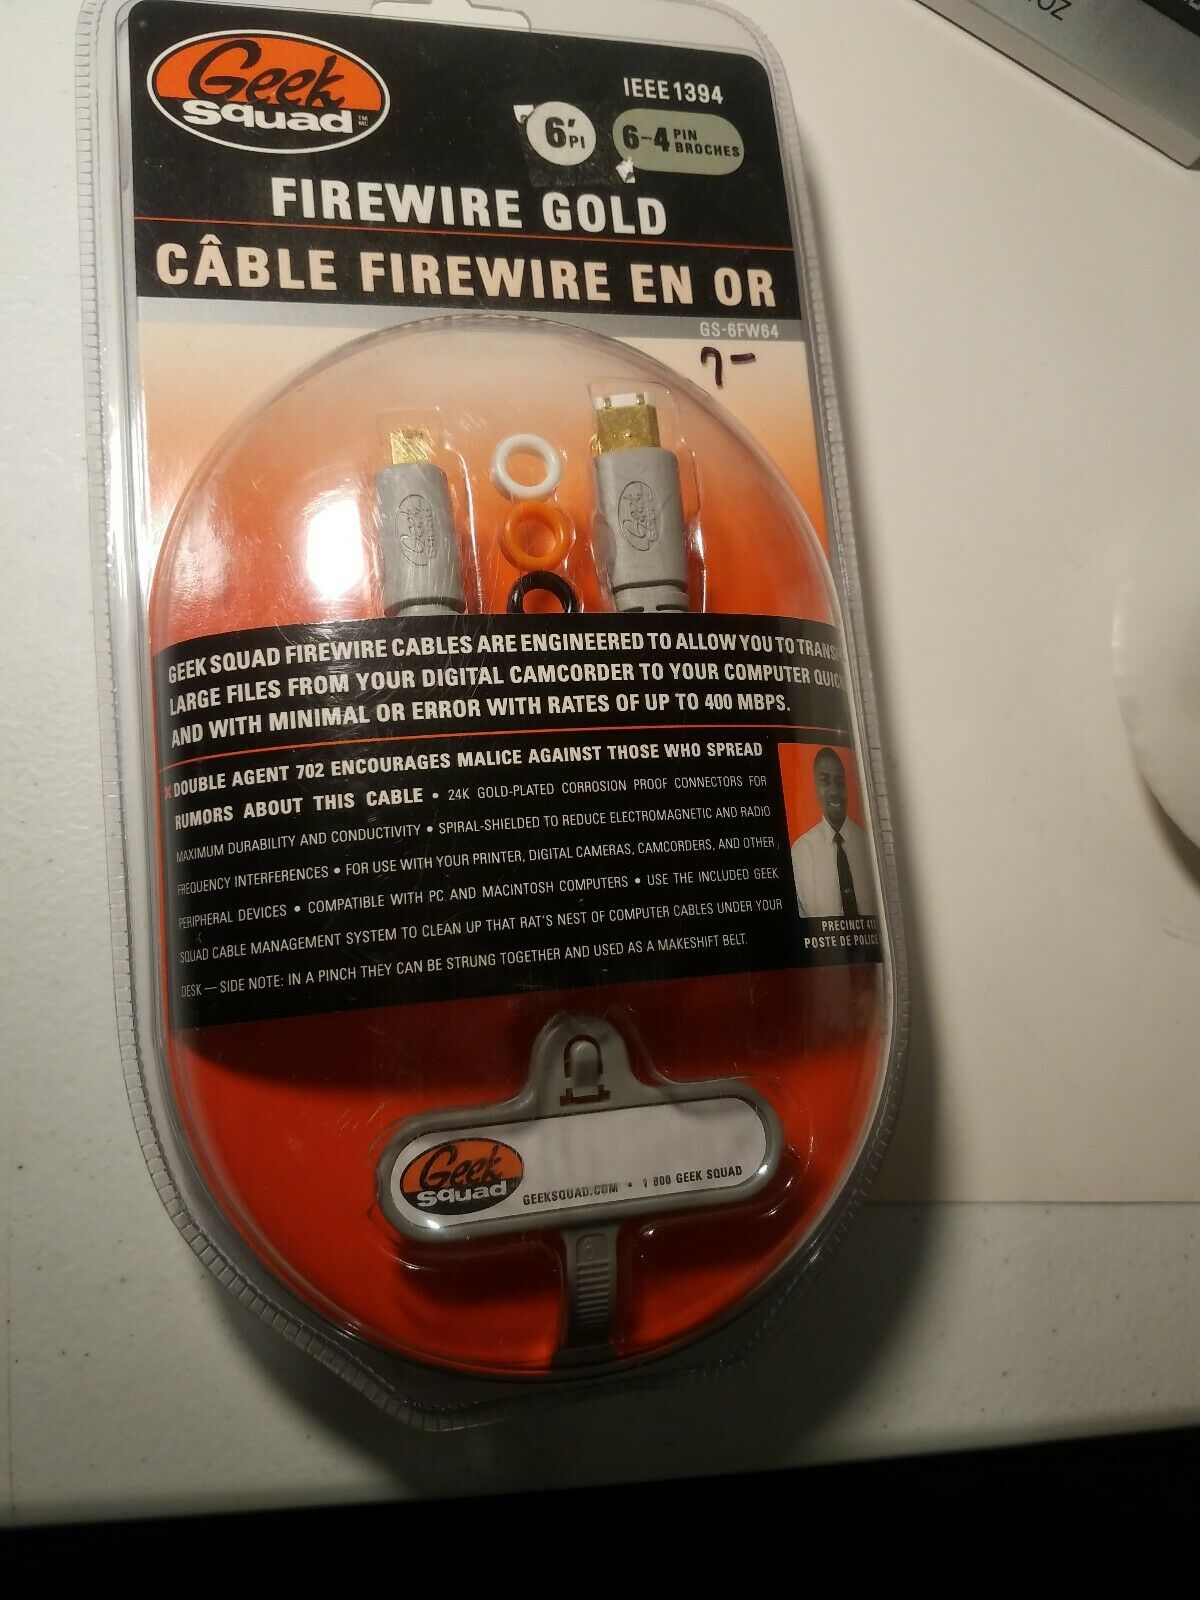 Geek Squad Firewire Gold 6' Cable 6-4 Pin GS-6FW64 IEEE 1394 UPC:600603101731